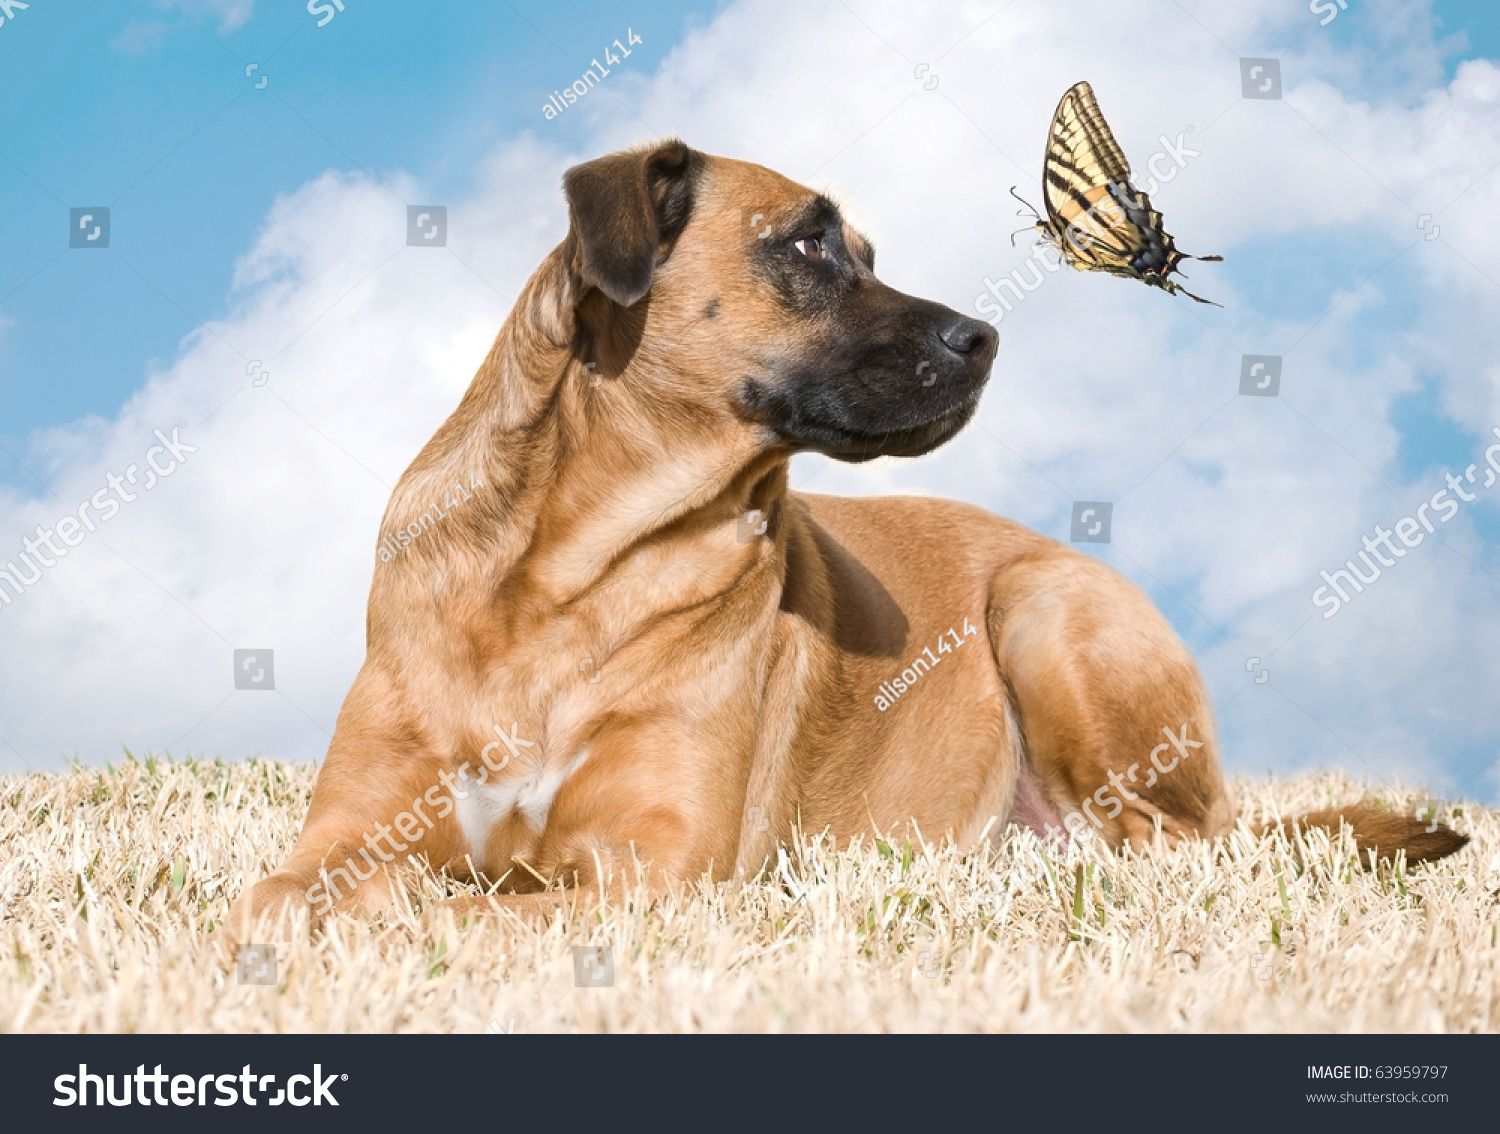 stock-photo-beautiful-dog-looks-up-at-a-